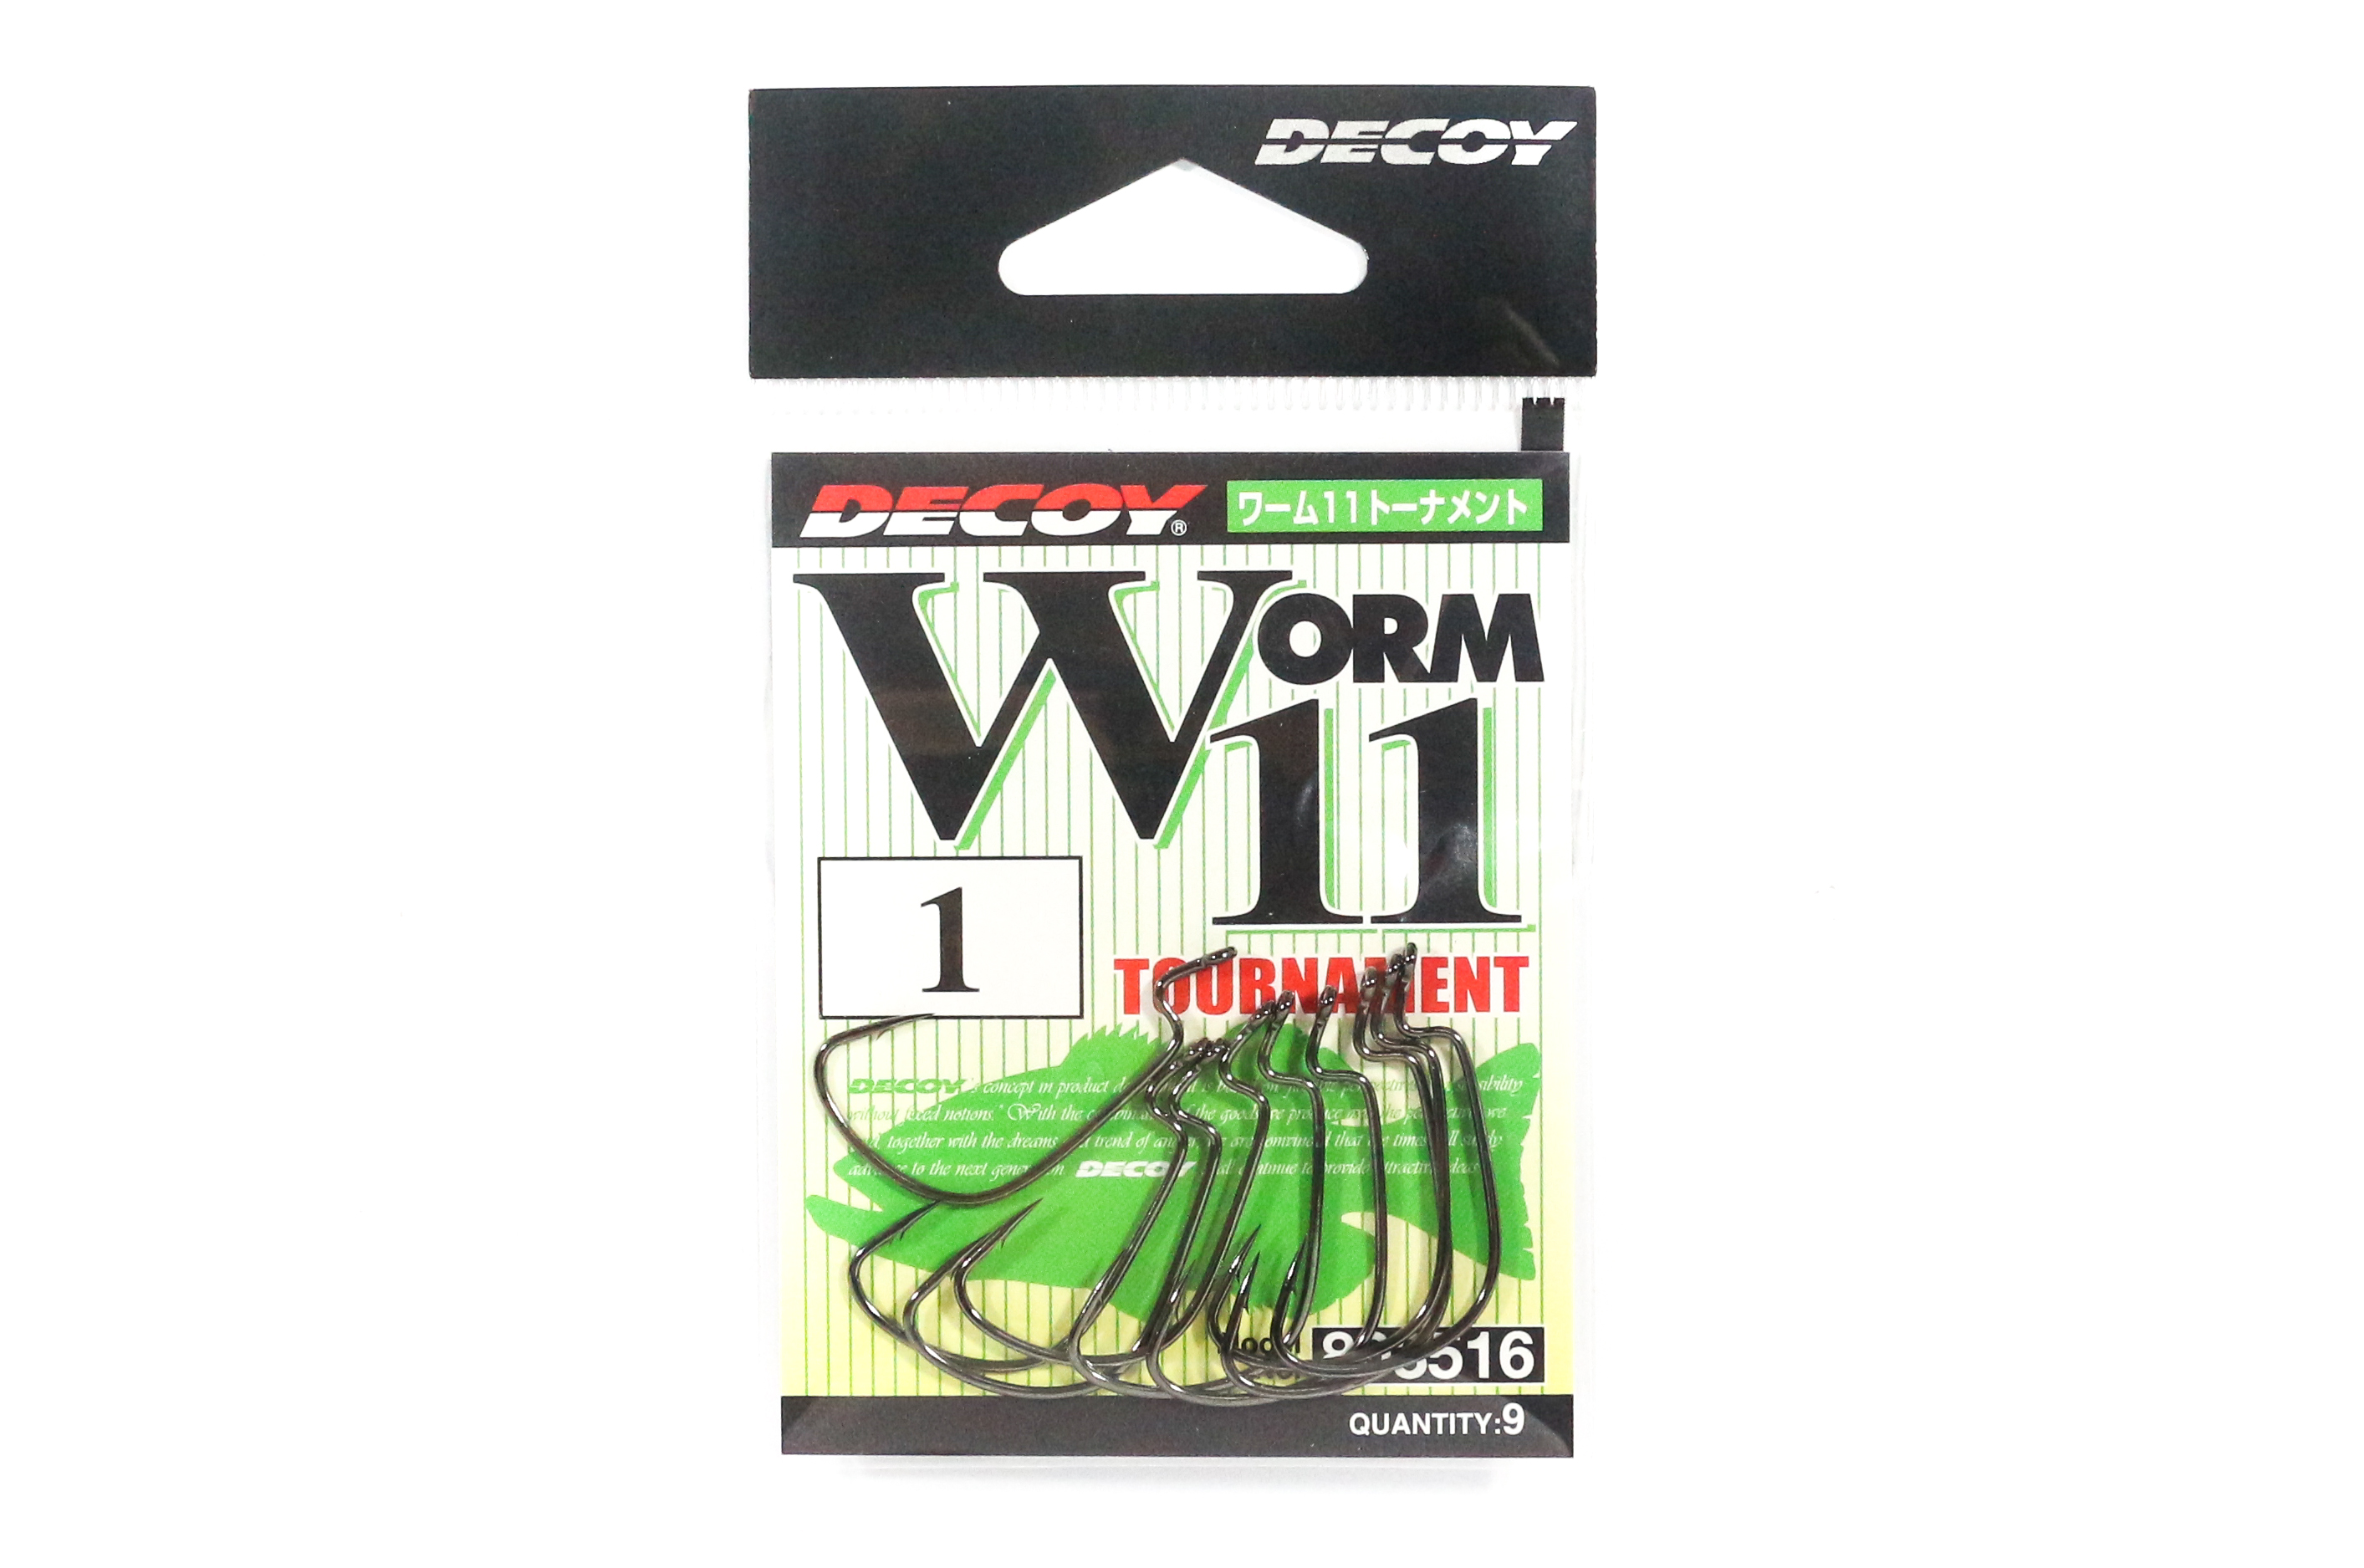 Decoy Worm 11 Tournament Worm Hook Size 1 (3516)